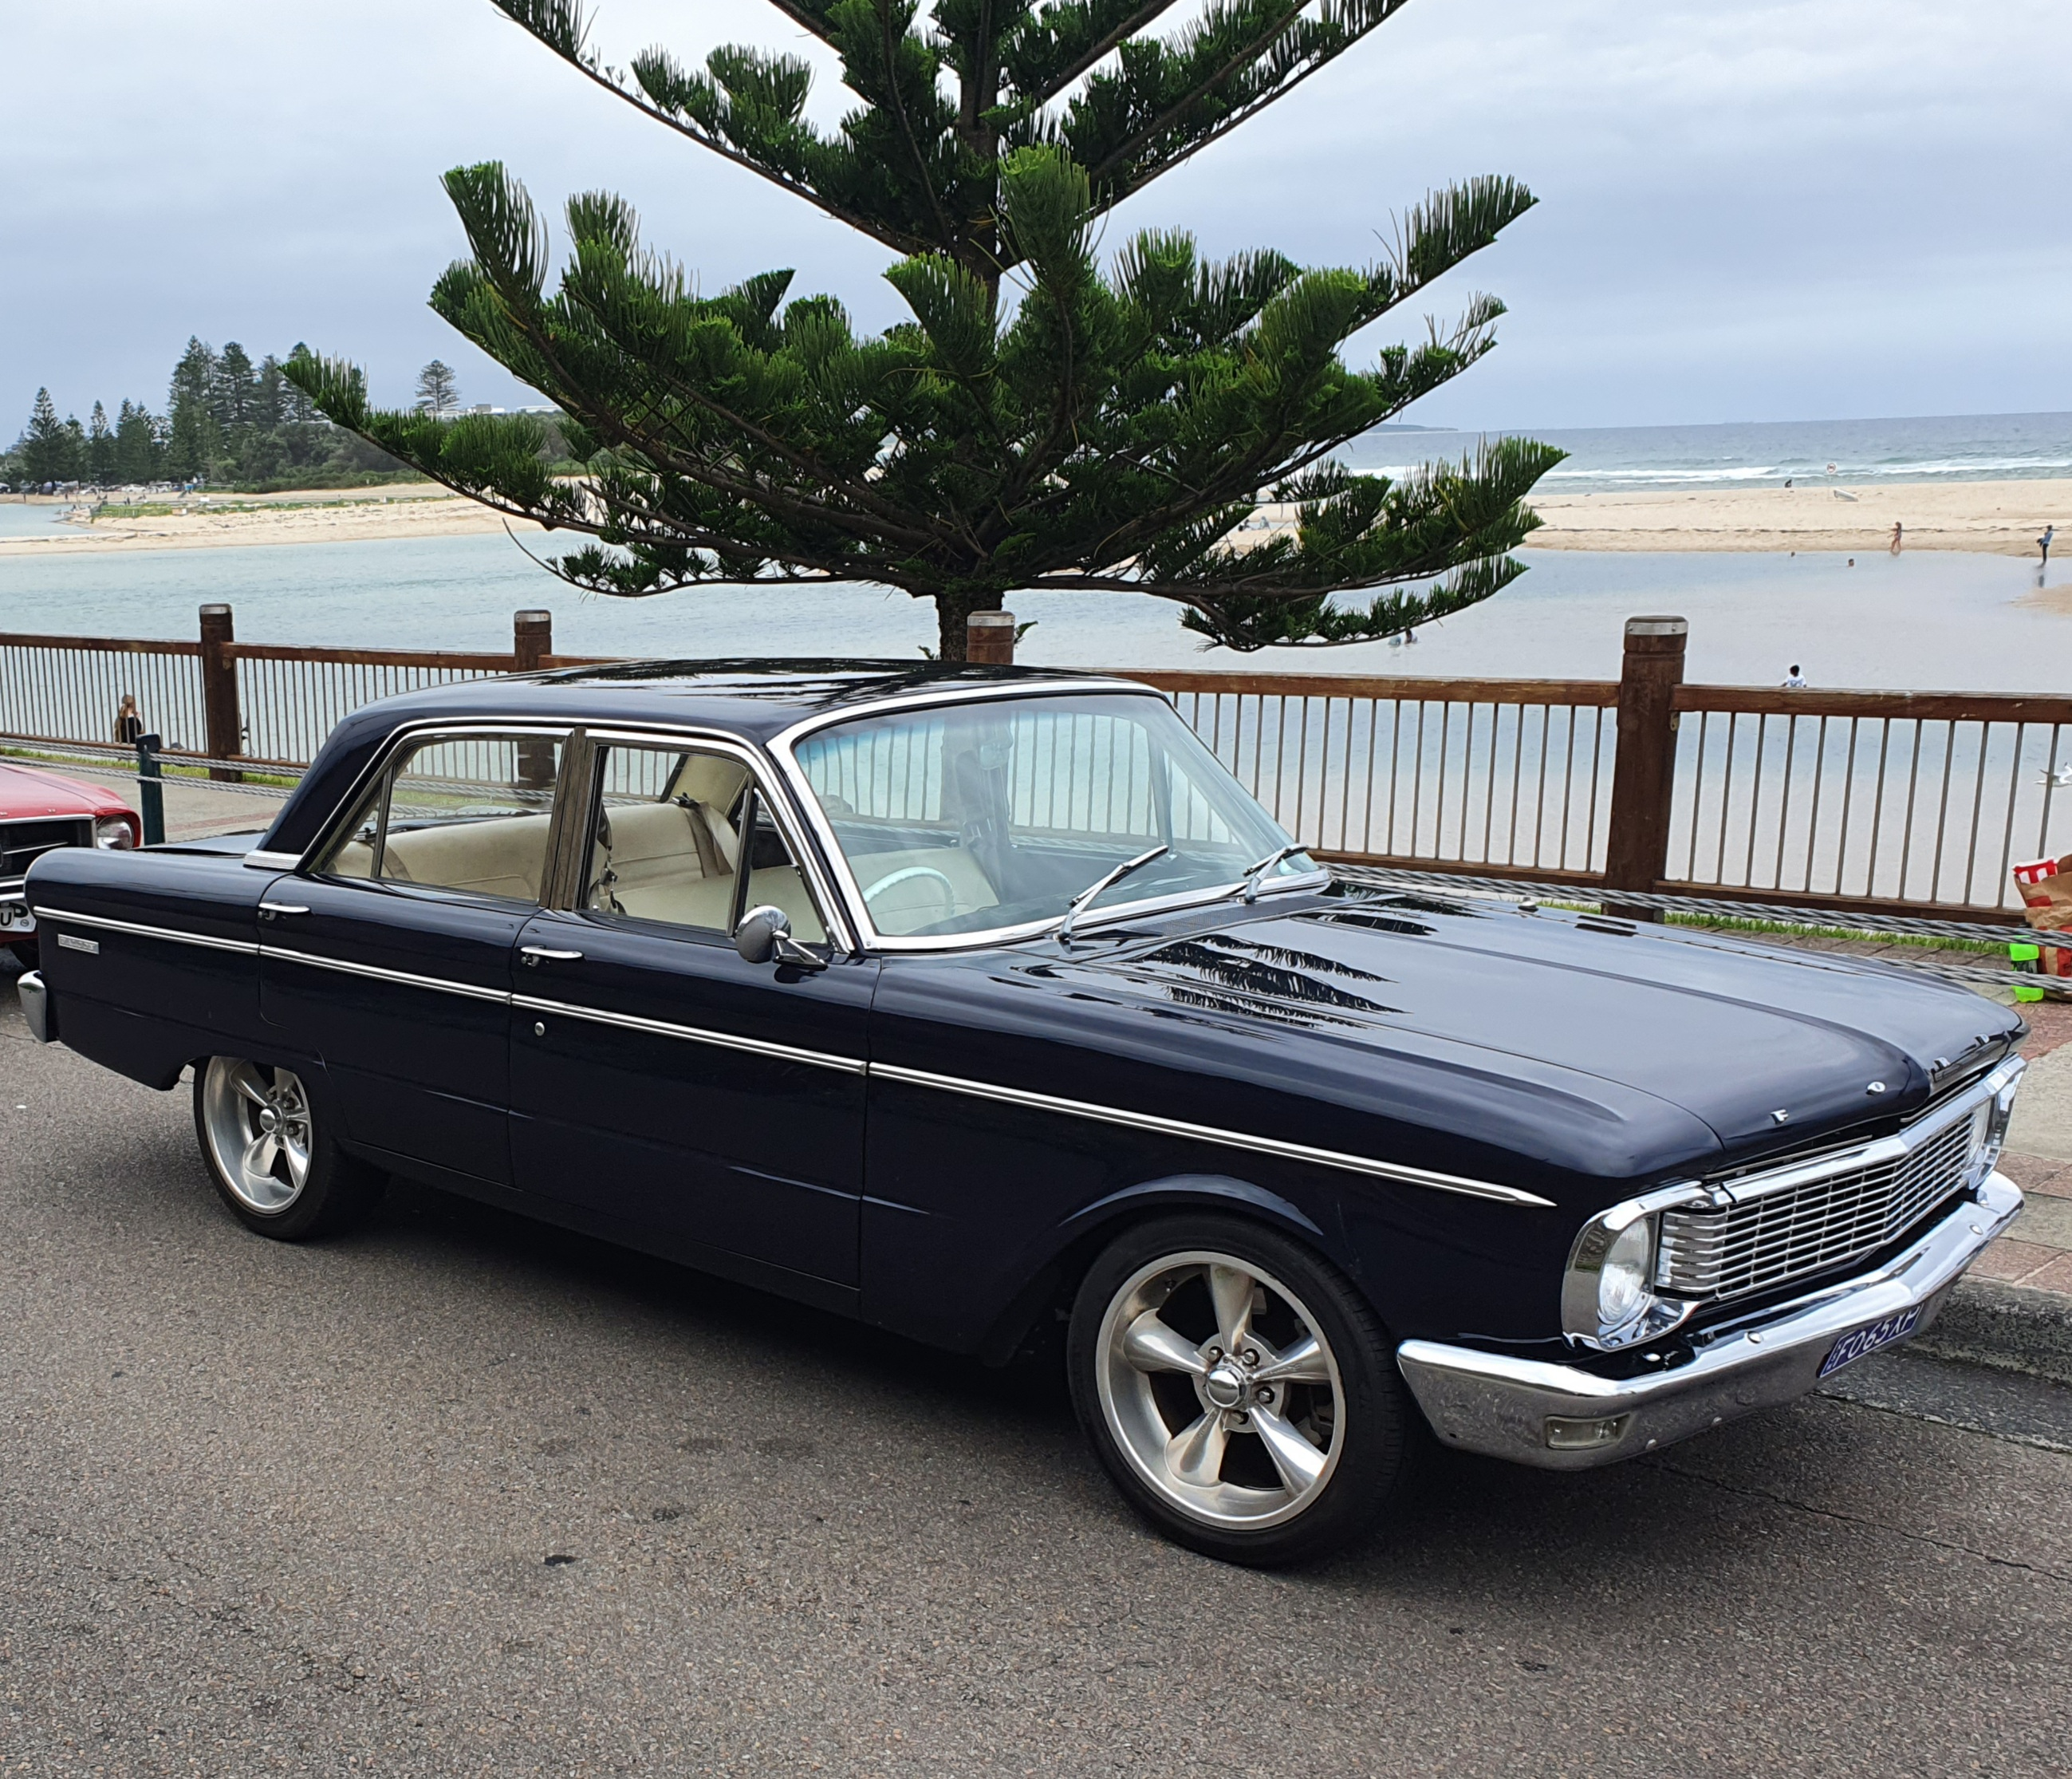 Andrew's 1965 Ford XP Falcon